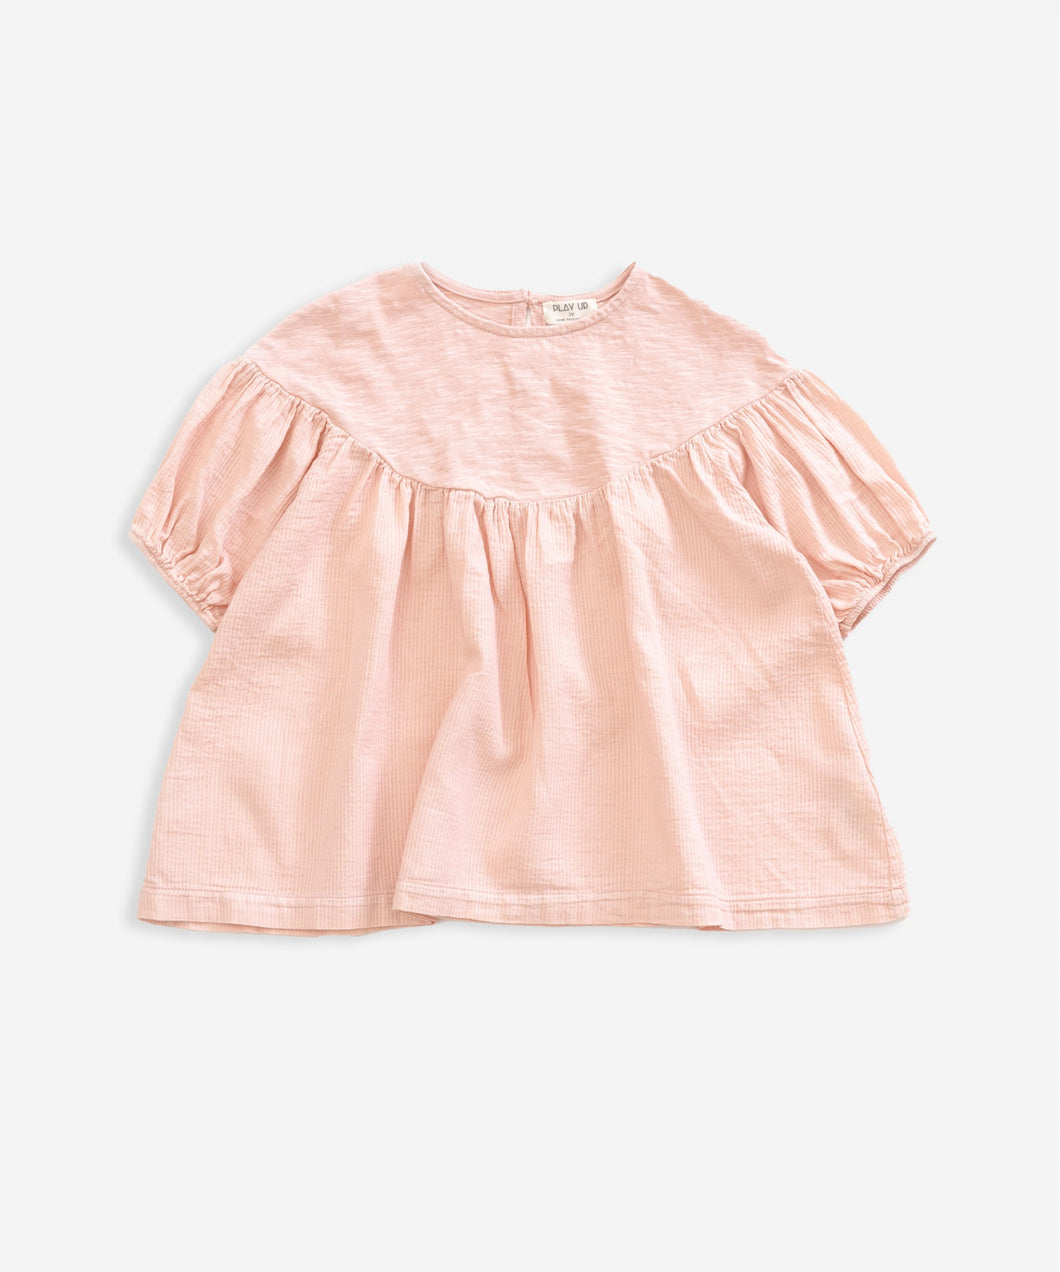 Play Up Short Sleeve Tunic - Coral - Bloom Kids Collection - Play Up